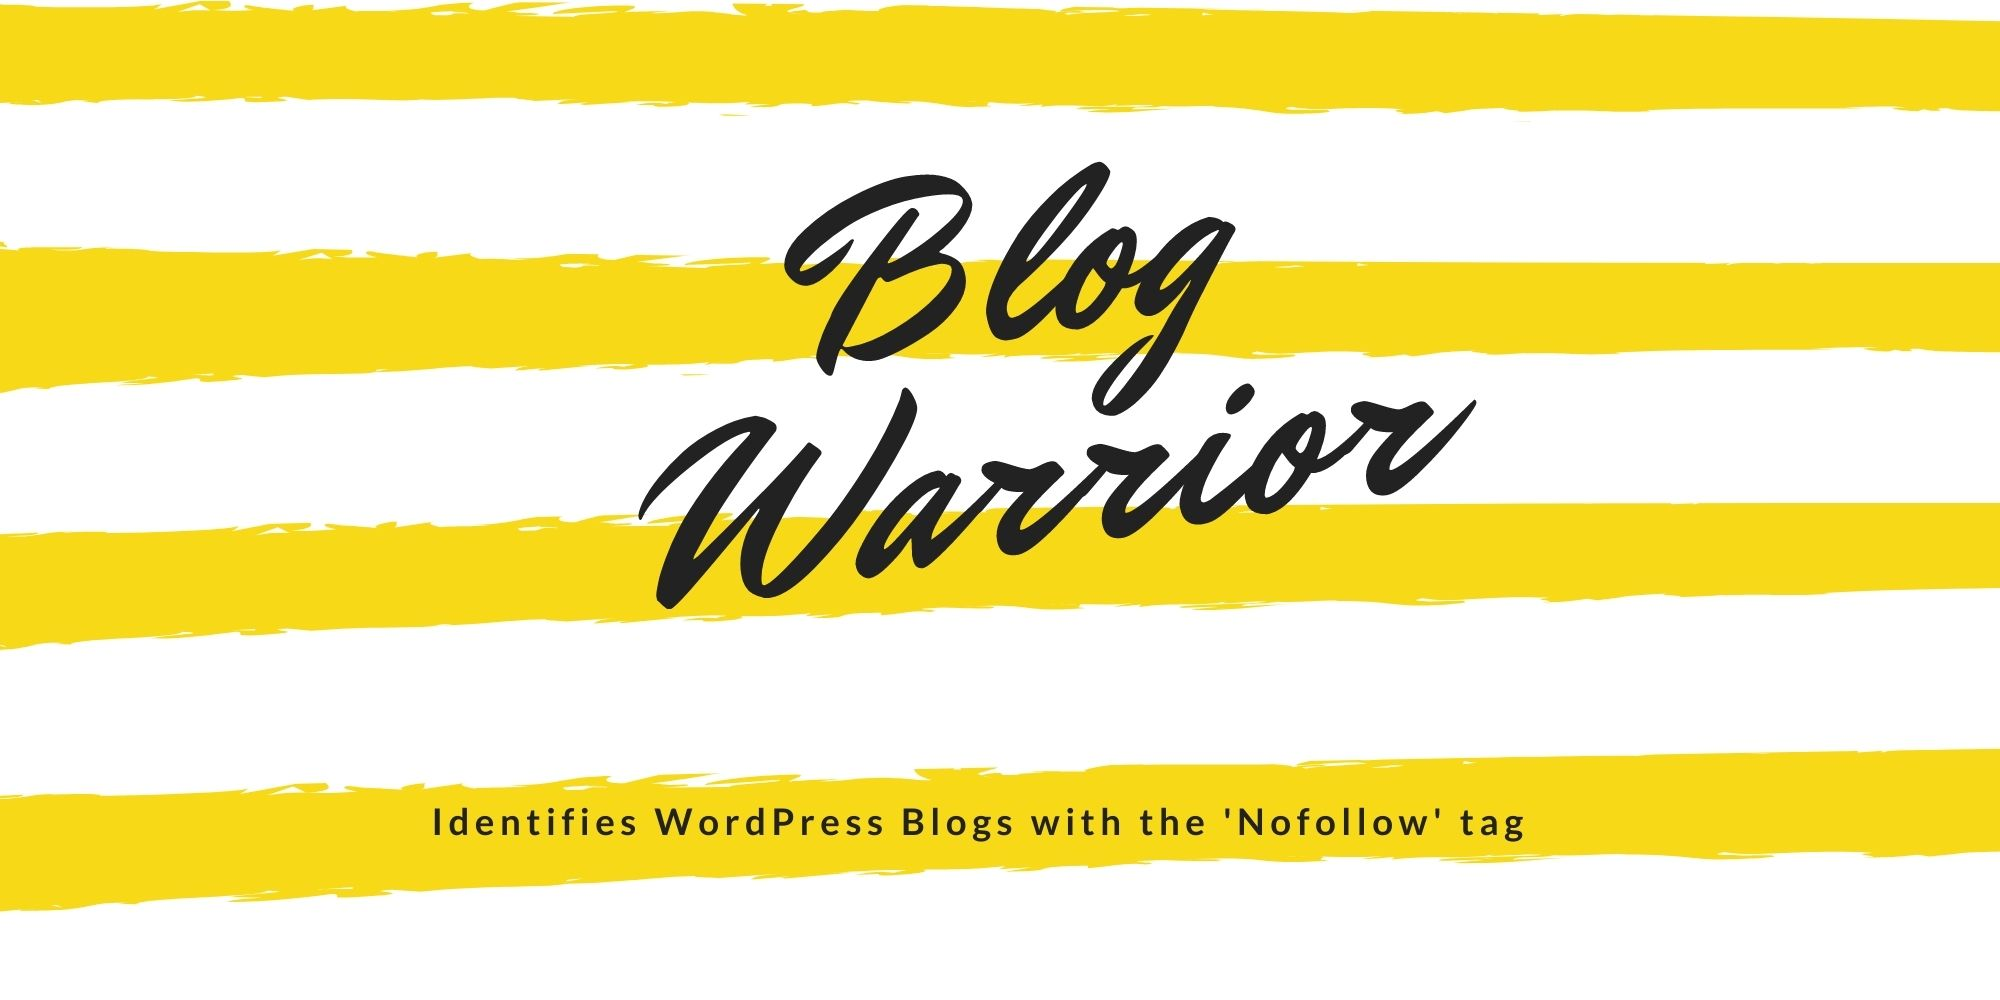 Blog Warrior,  Identifies WordPress Blogs with the 'nofollow' tag